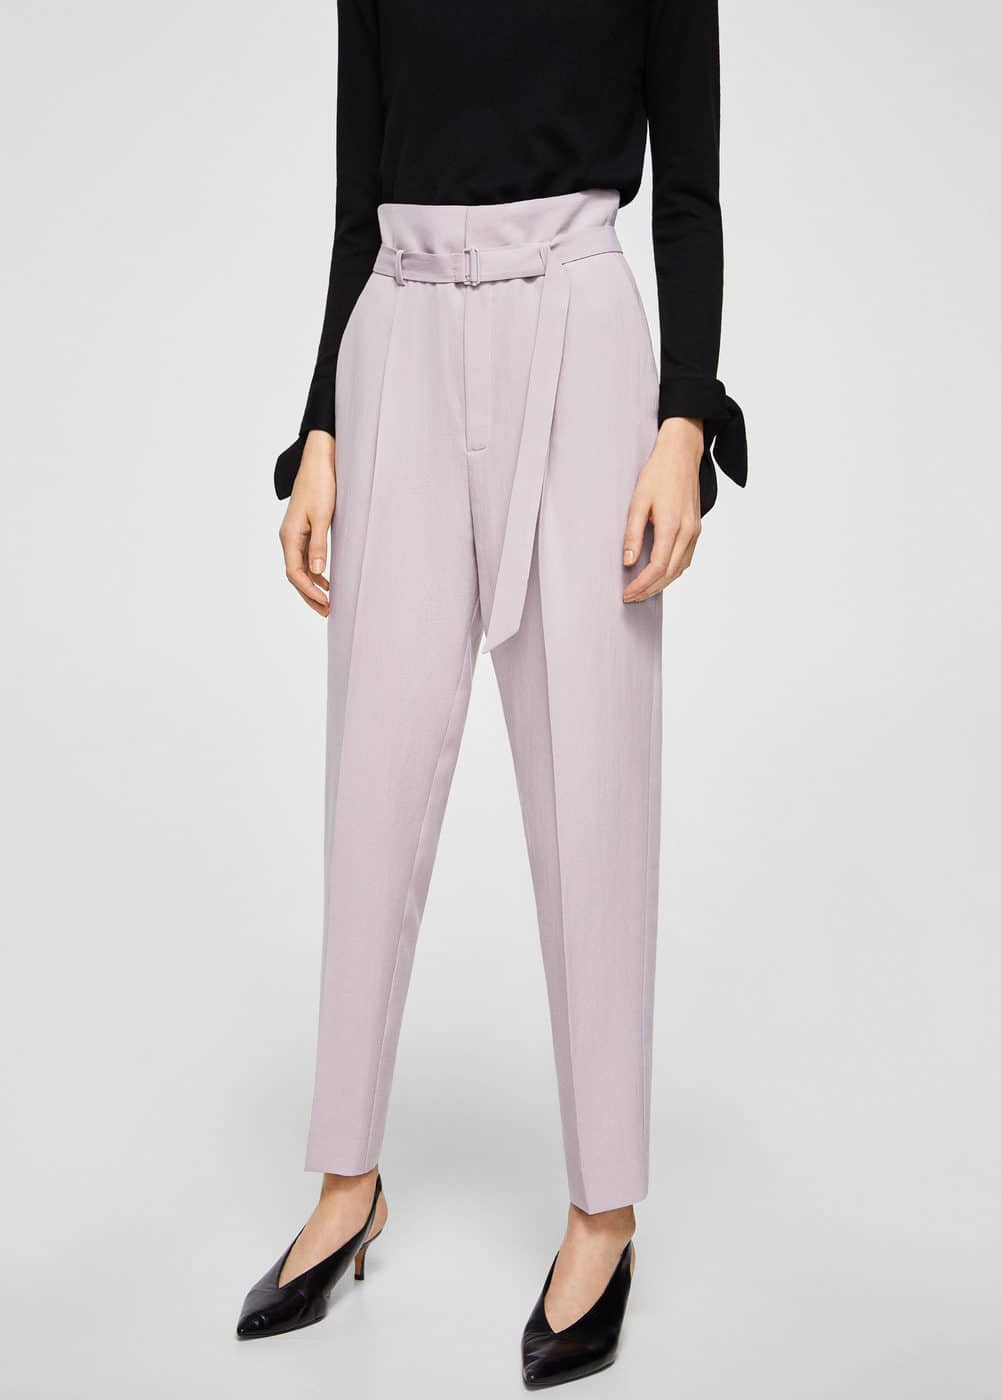 Buckle high-waist trousers | MANGO